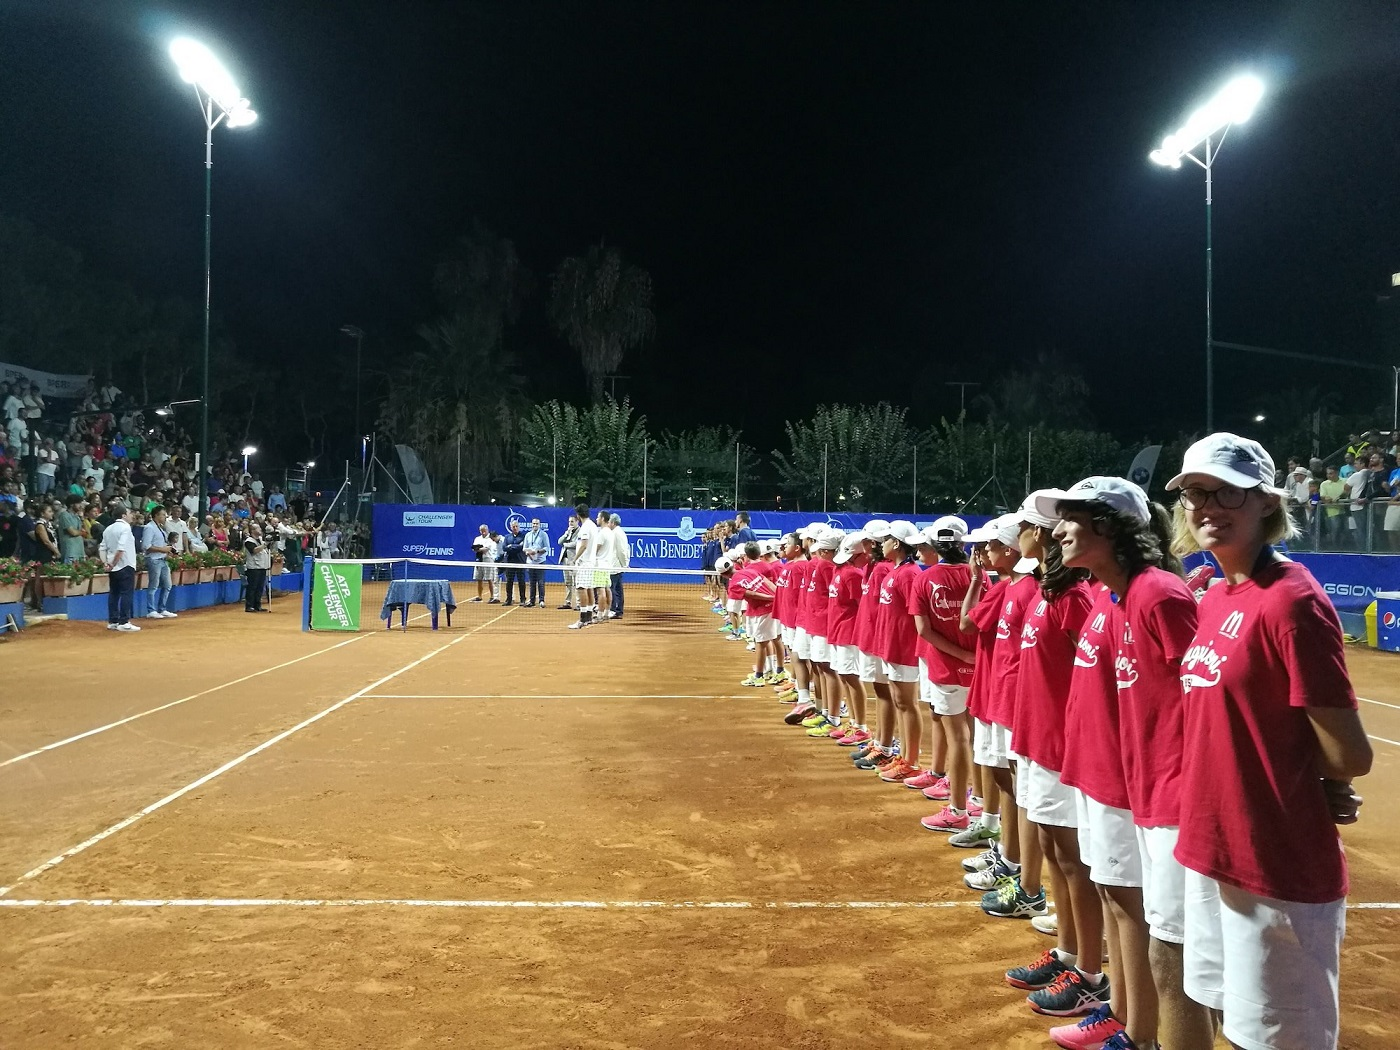 San Benedetto tennis cup-Atp Challenger € 64,000